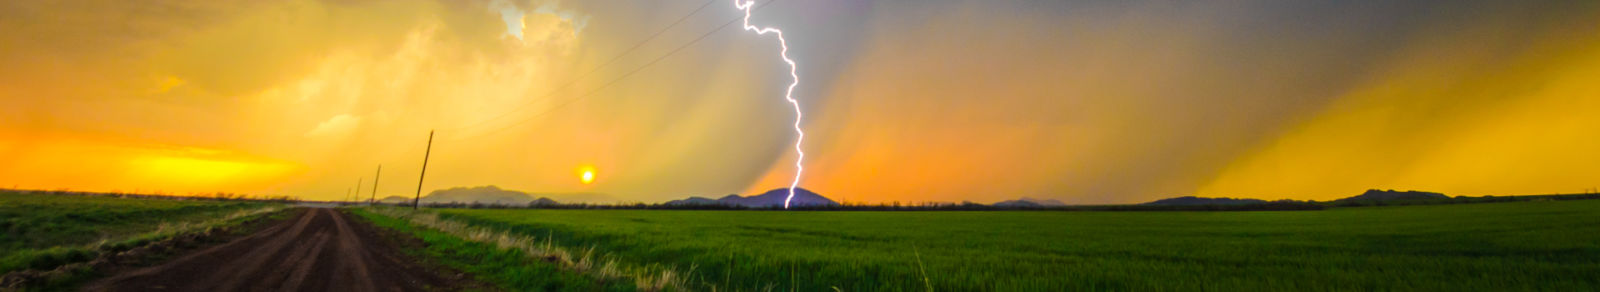 lightning striking, green grass foreground and orange sky background. Image by Dwayne Kear